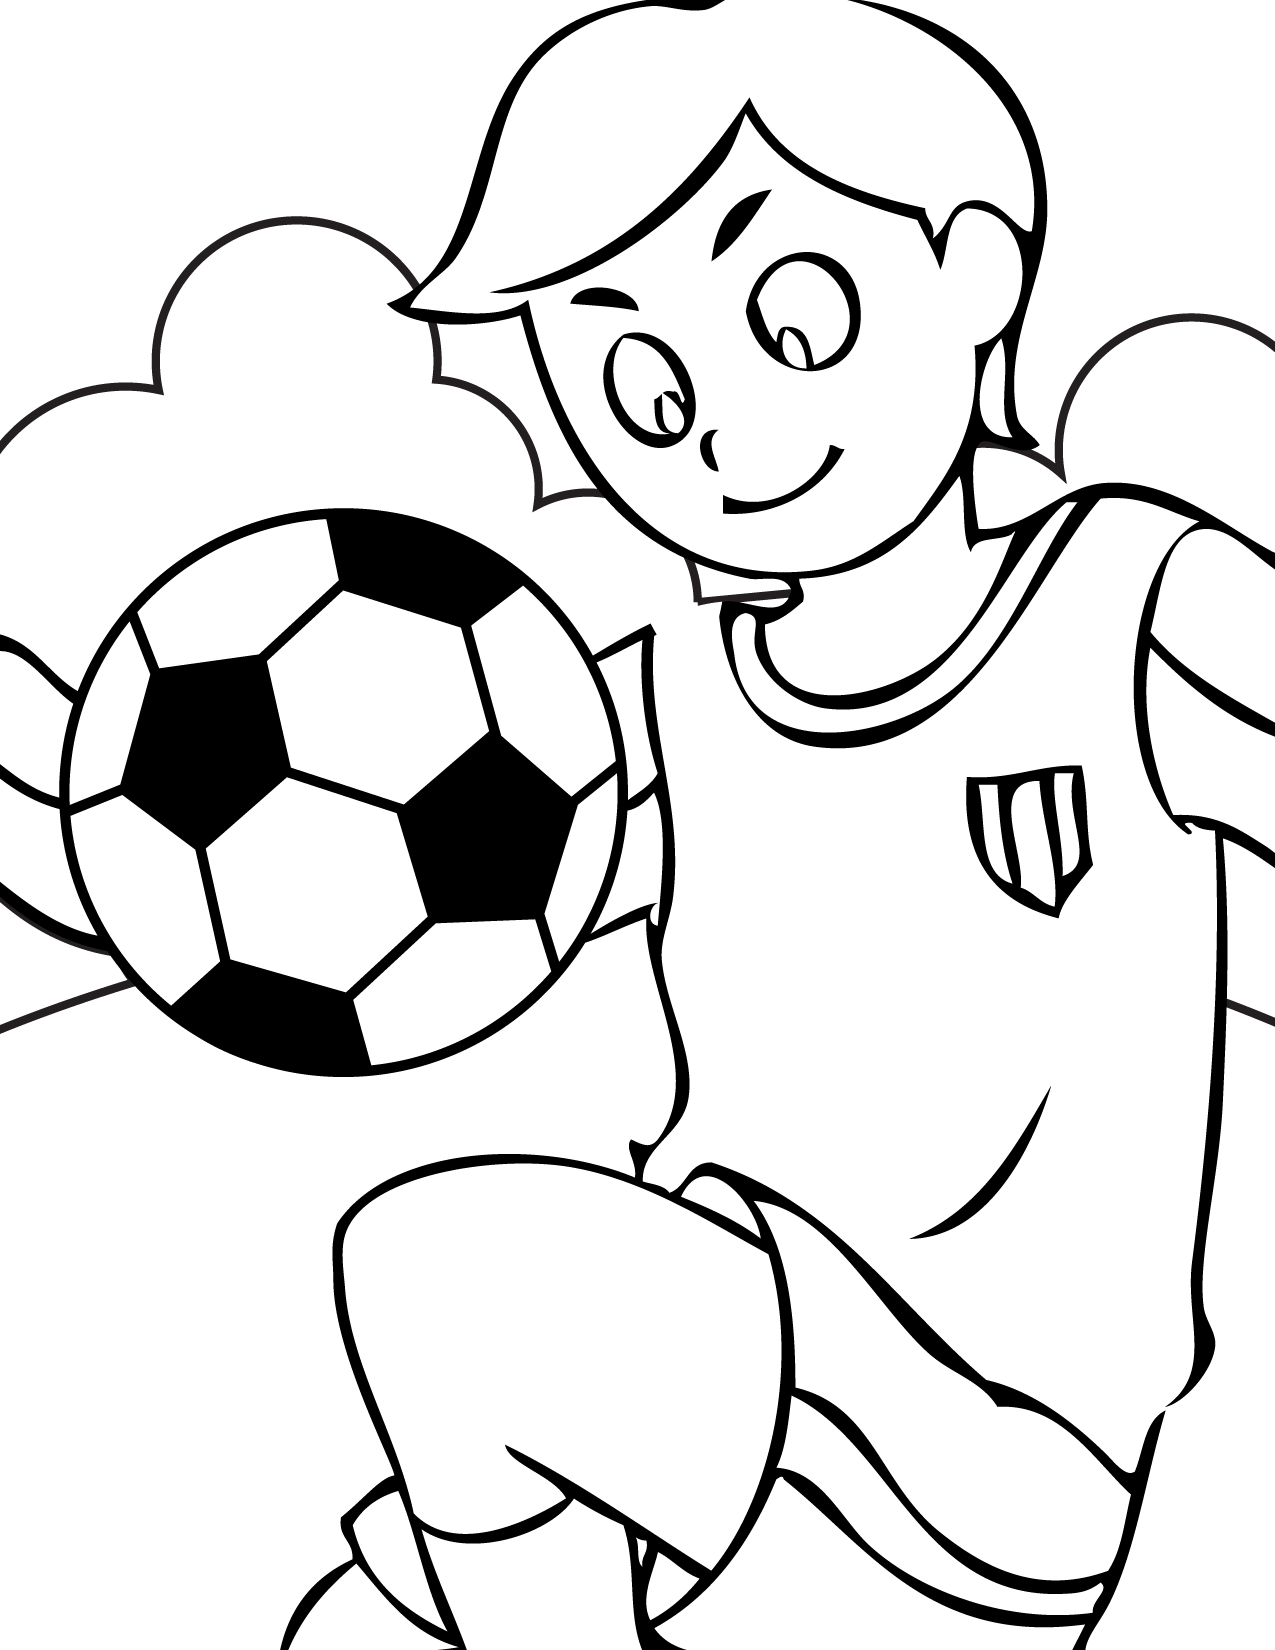 colouring pages soccer cartoon soccer ball clipartsco pages soccer colouring